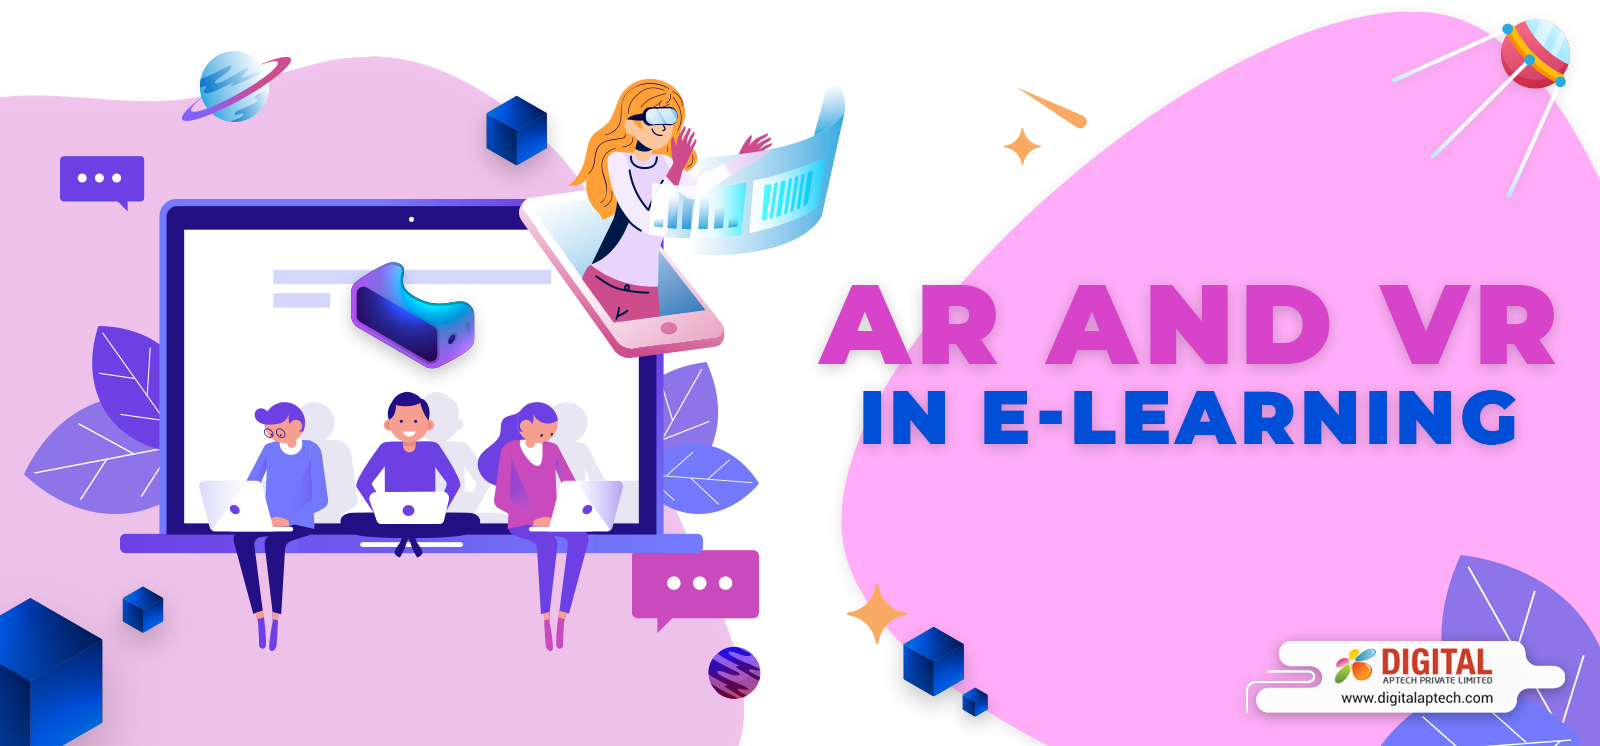 How Can AR and VR Impact E-Learning?